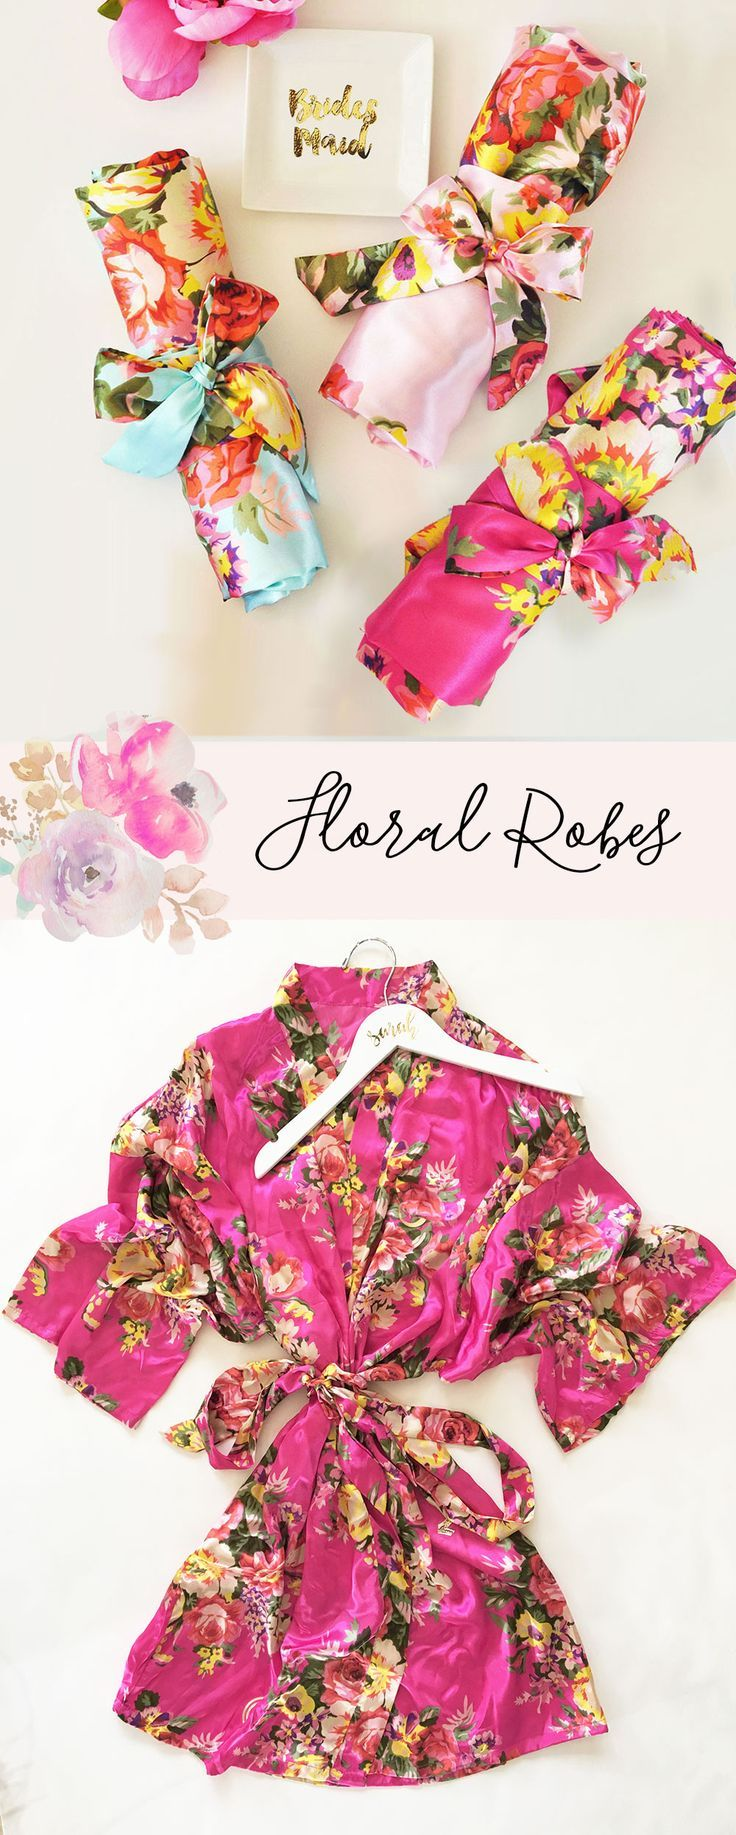 Floral Robe | Bridesmaid Gift Ideas | Floral Bridesmaid Robe | Floral Print www.klowephoto.com